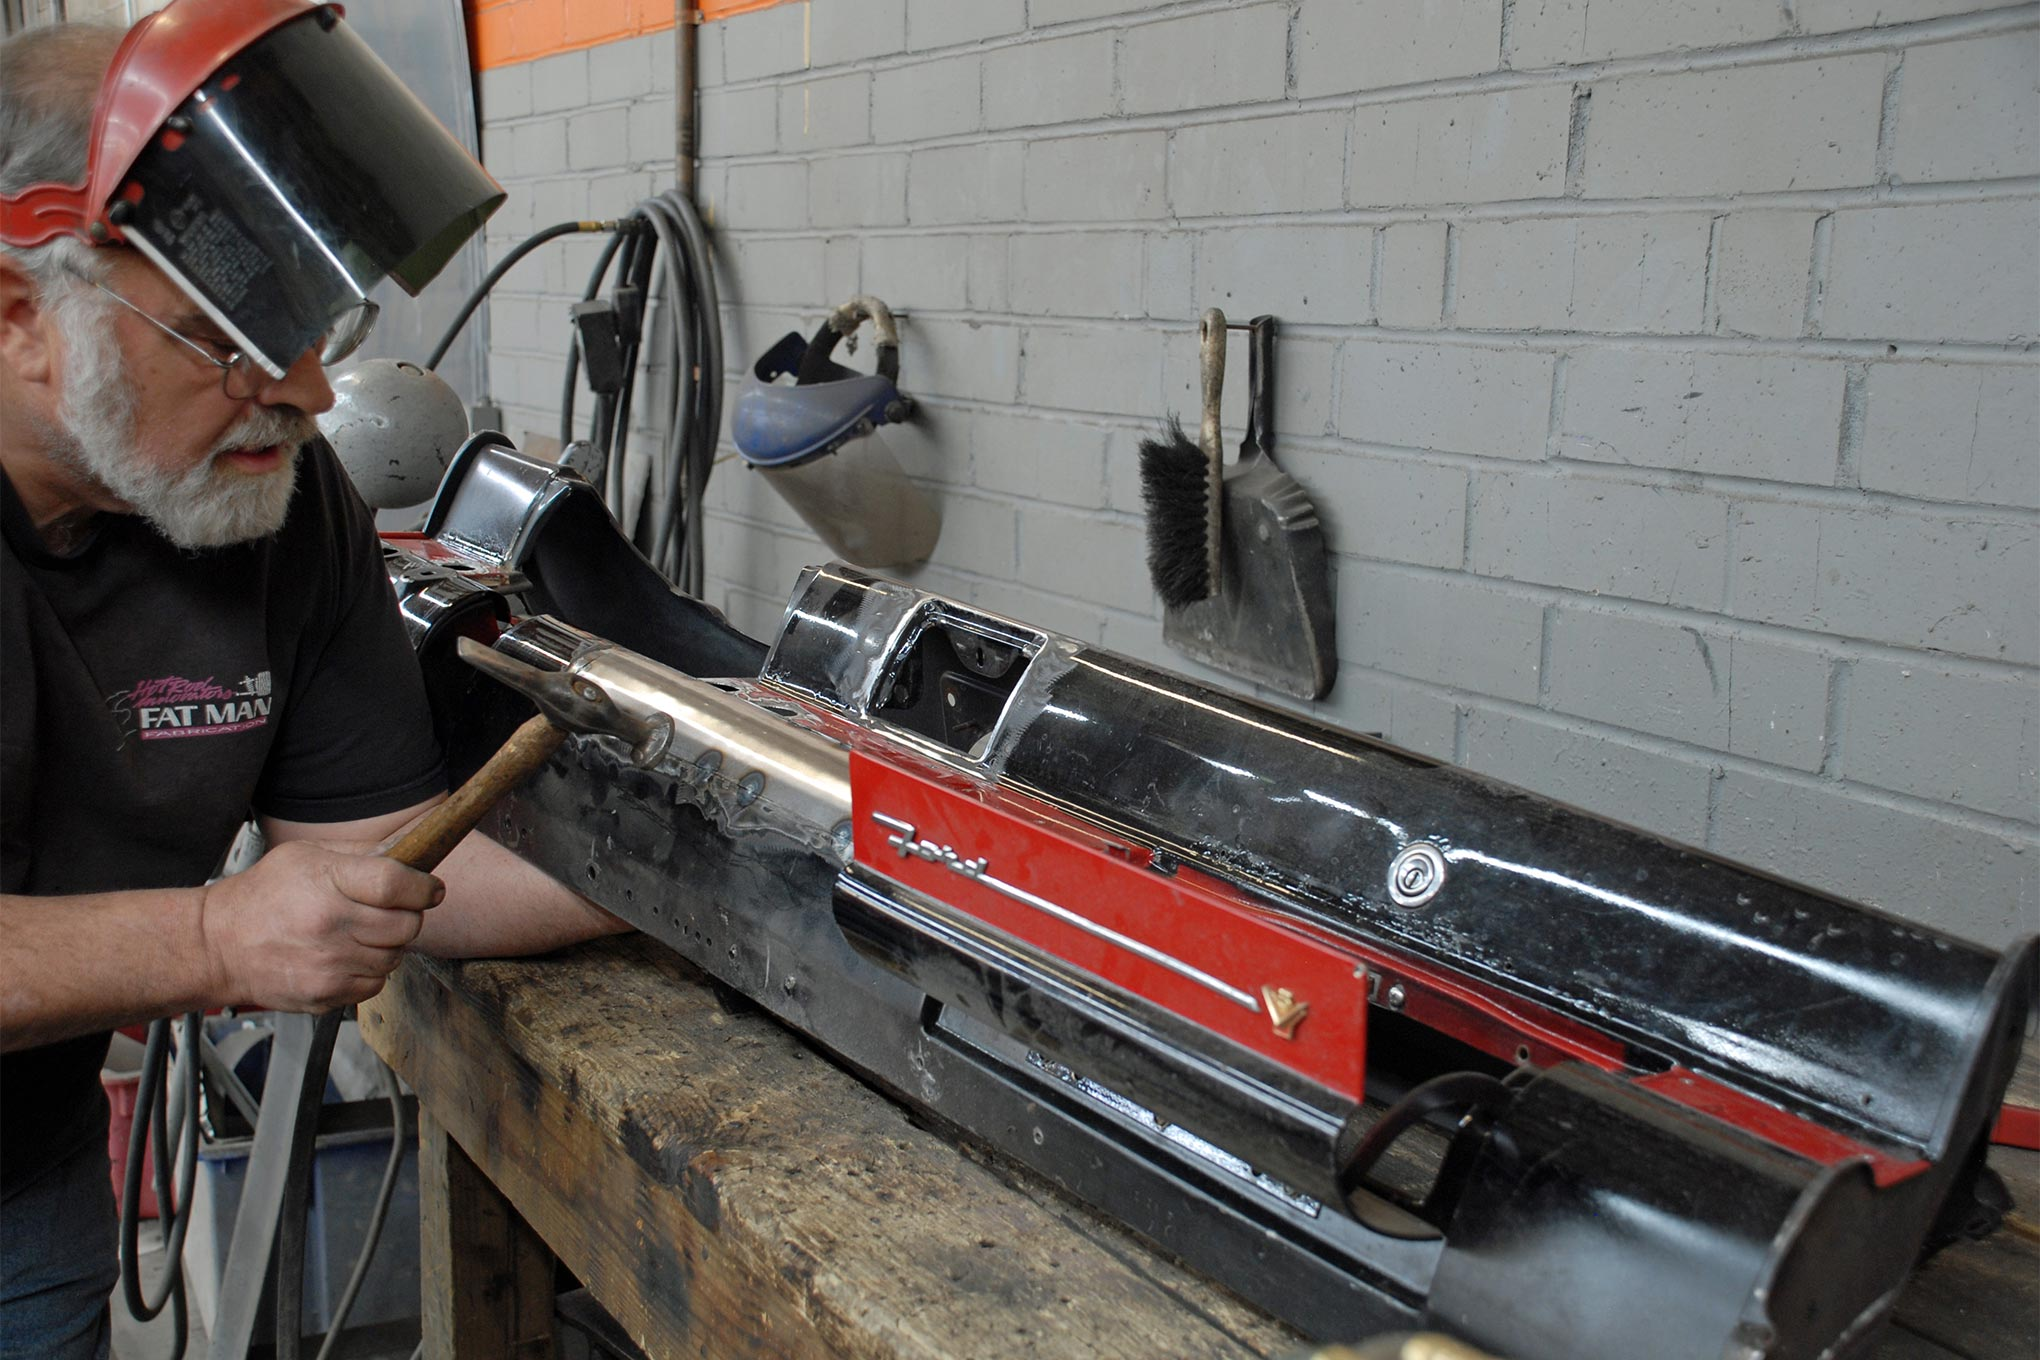 Hammering the tack welds while they are still orange-hot helps shrink the metal and keep all the seams nice and tight.